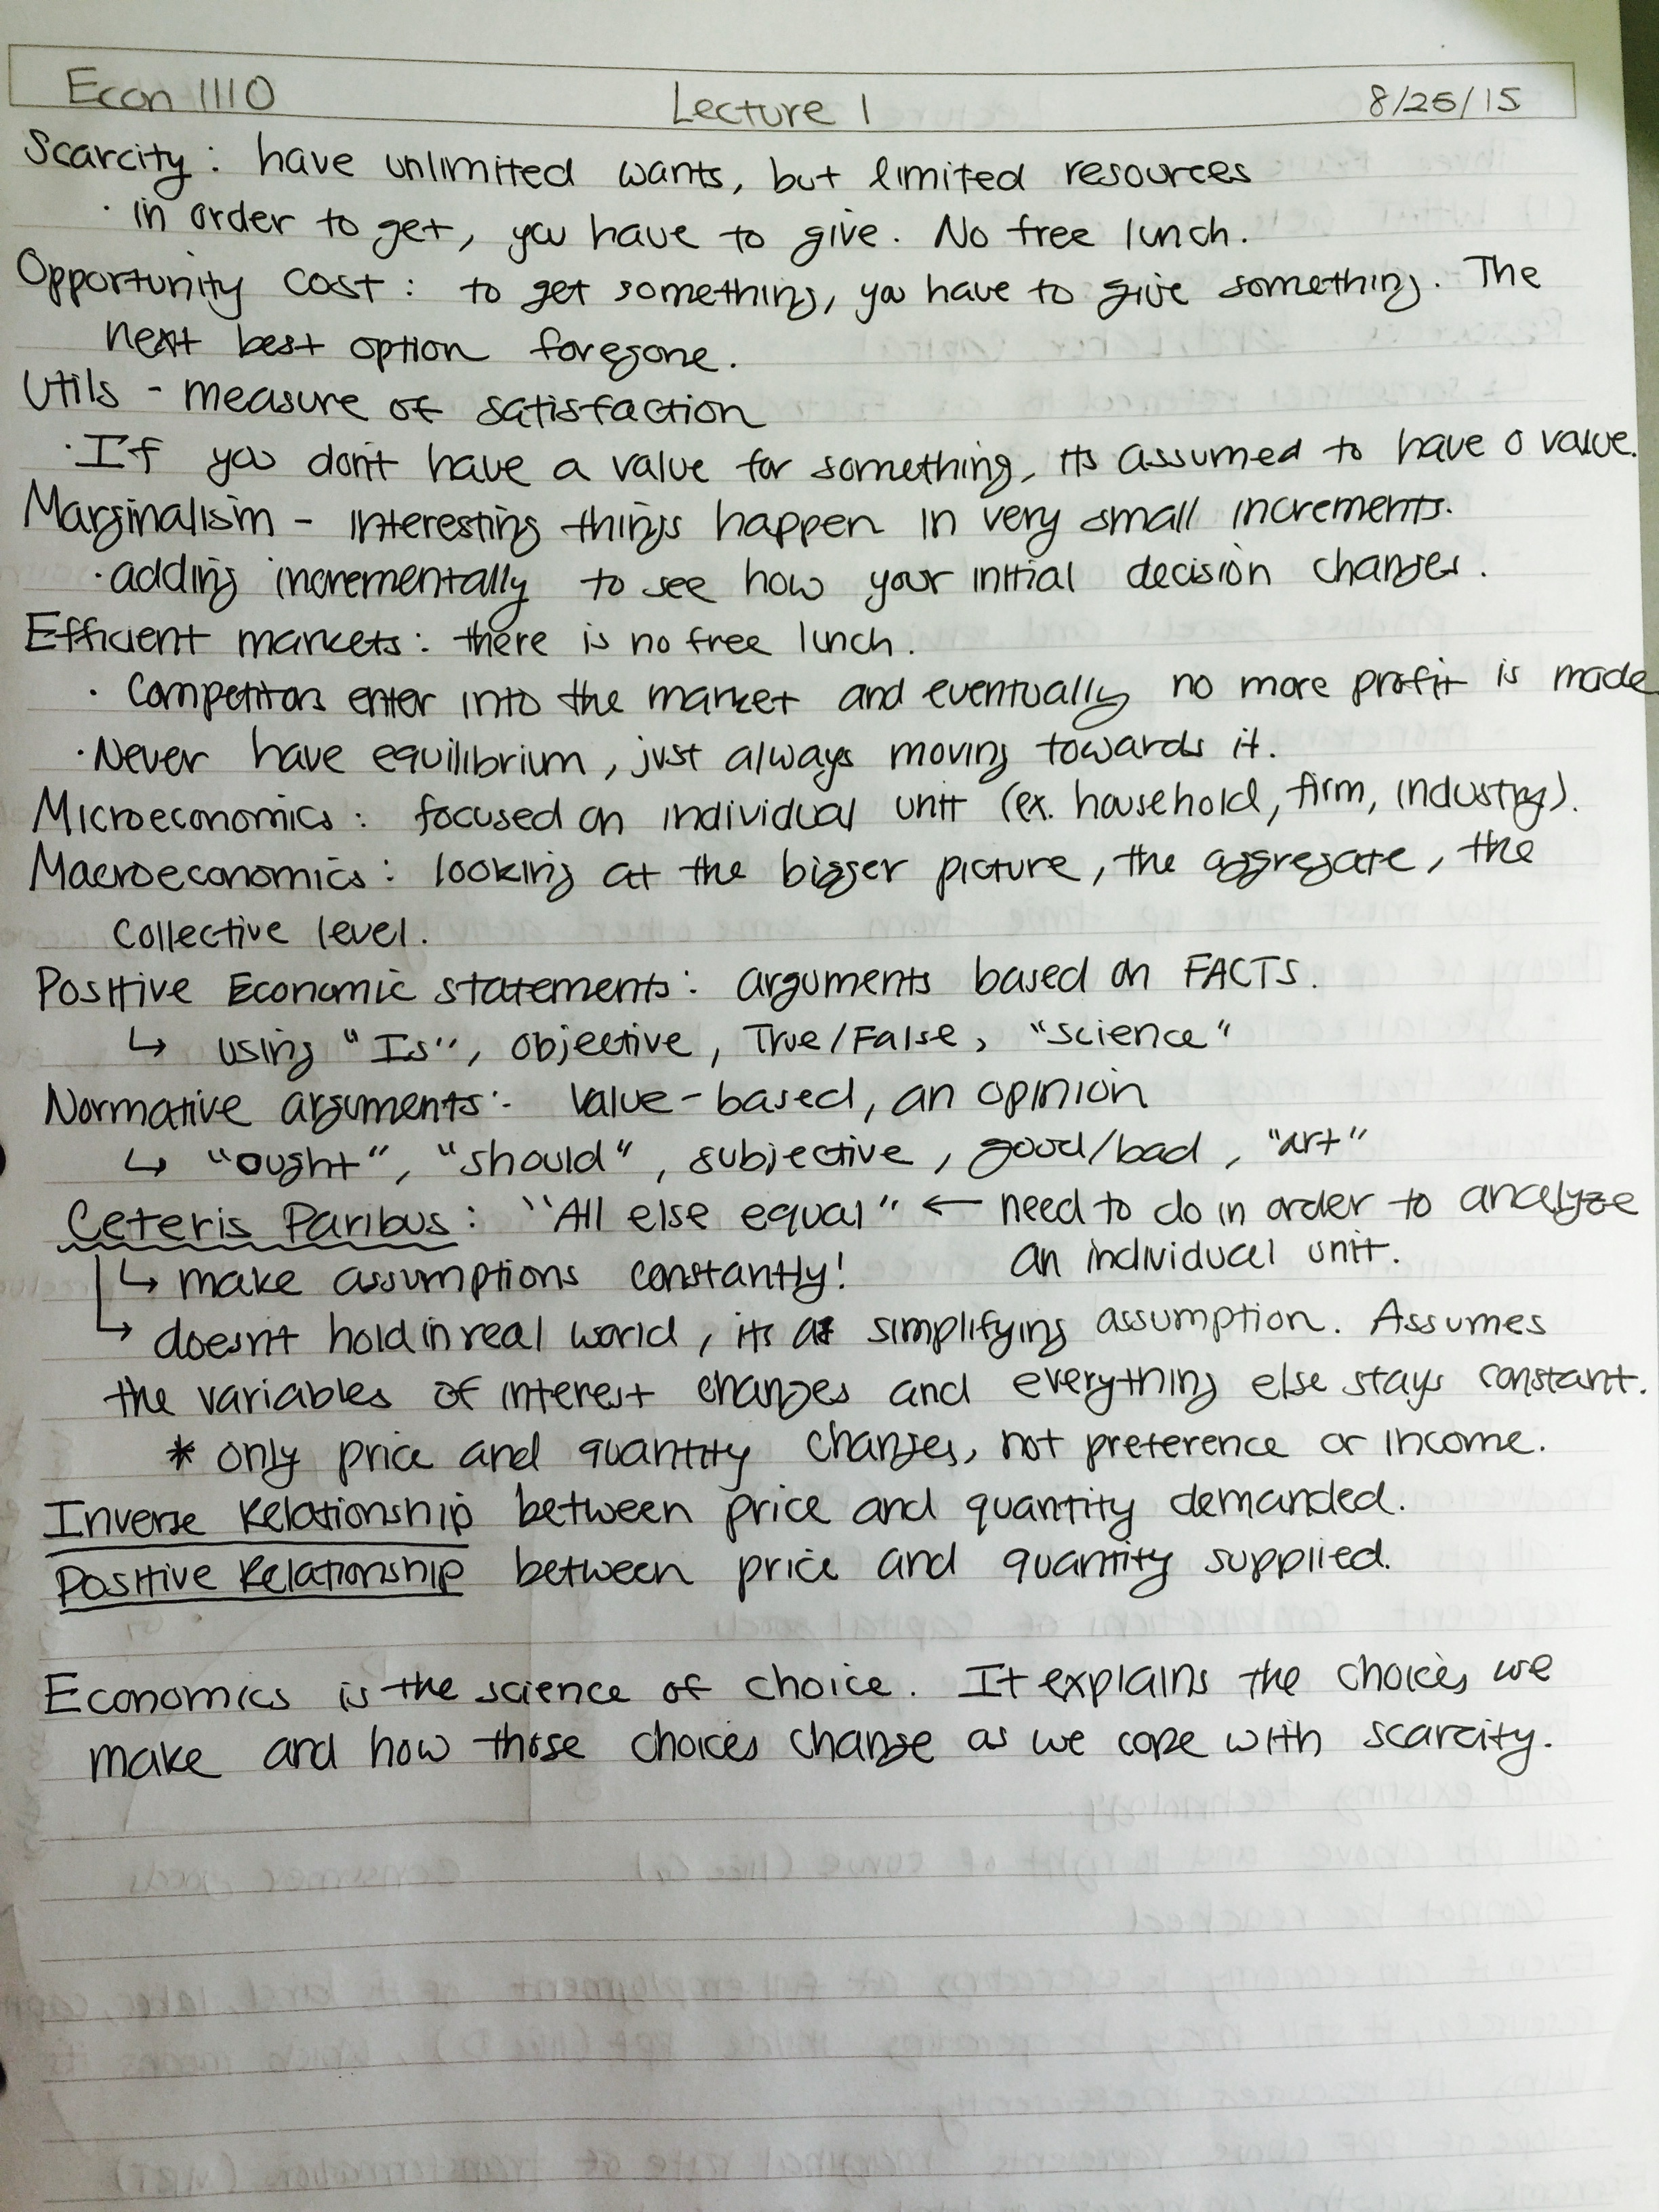 ECON 1110 - Class Notes - Week 1